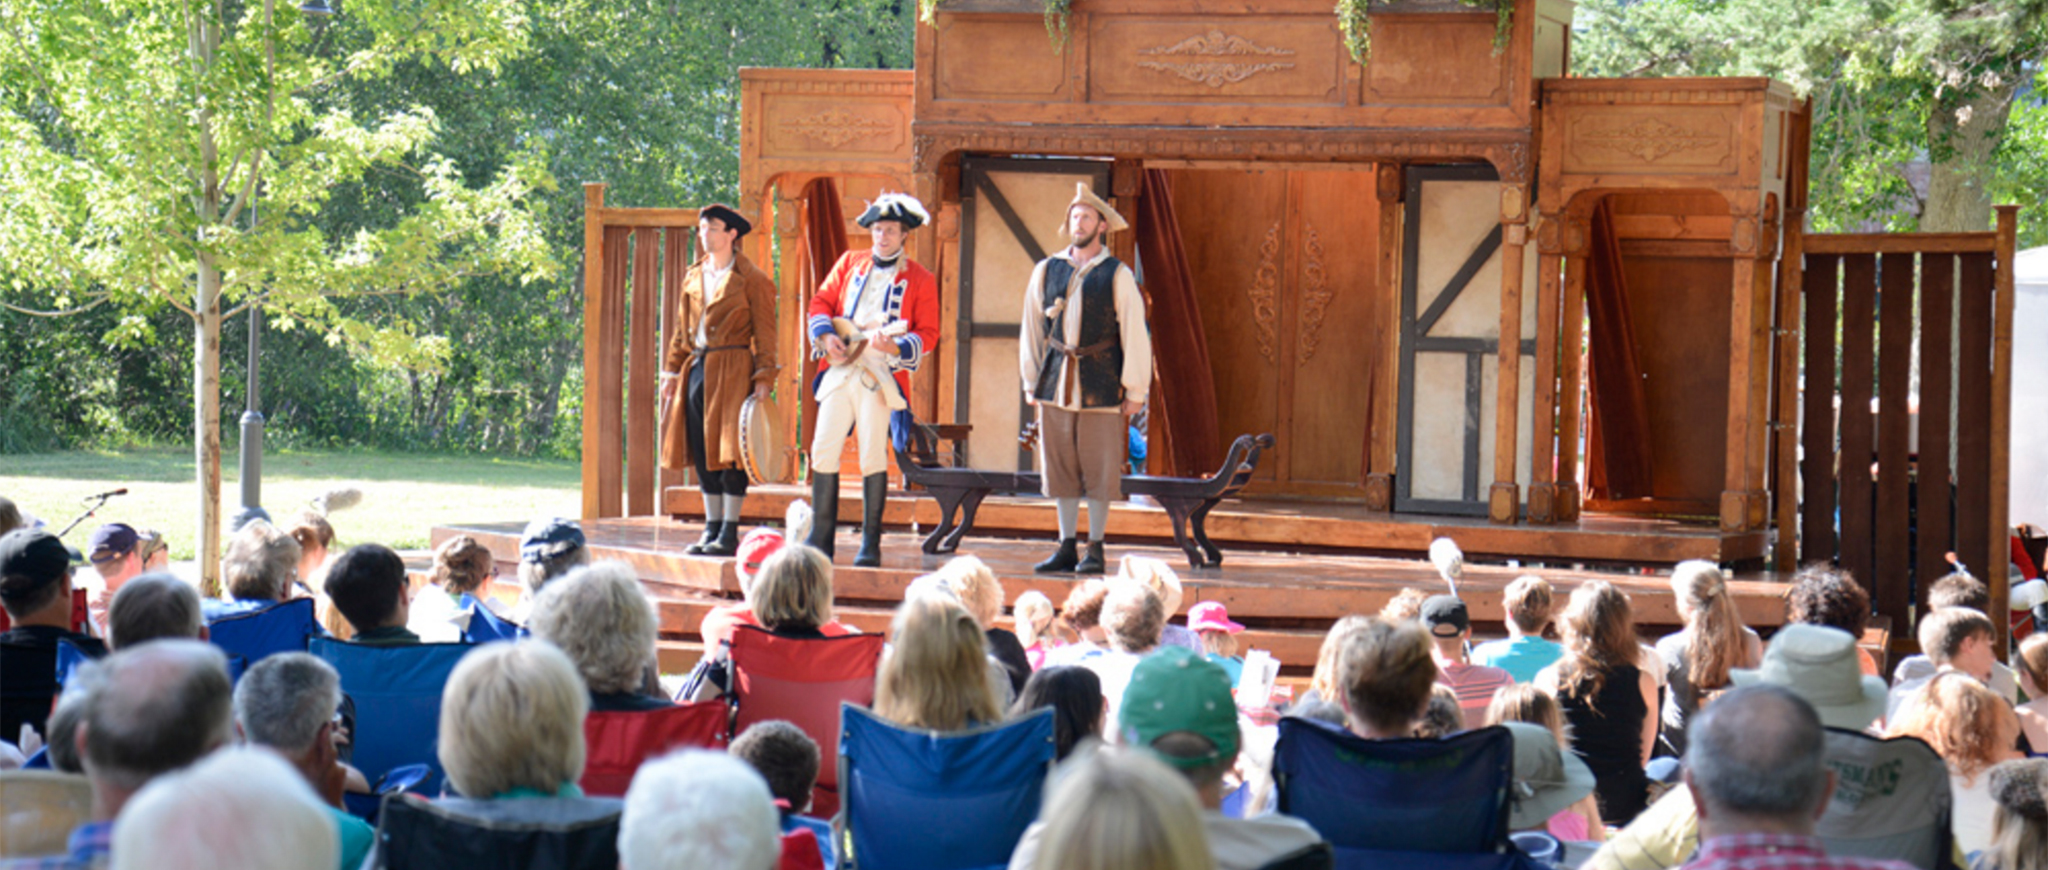 shakespeare in the parks in Bozeman